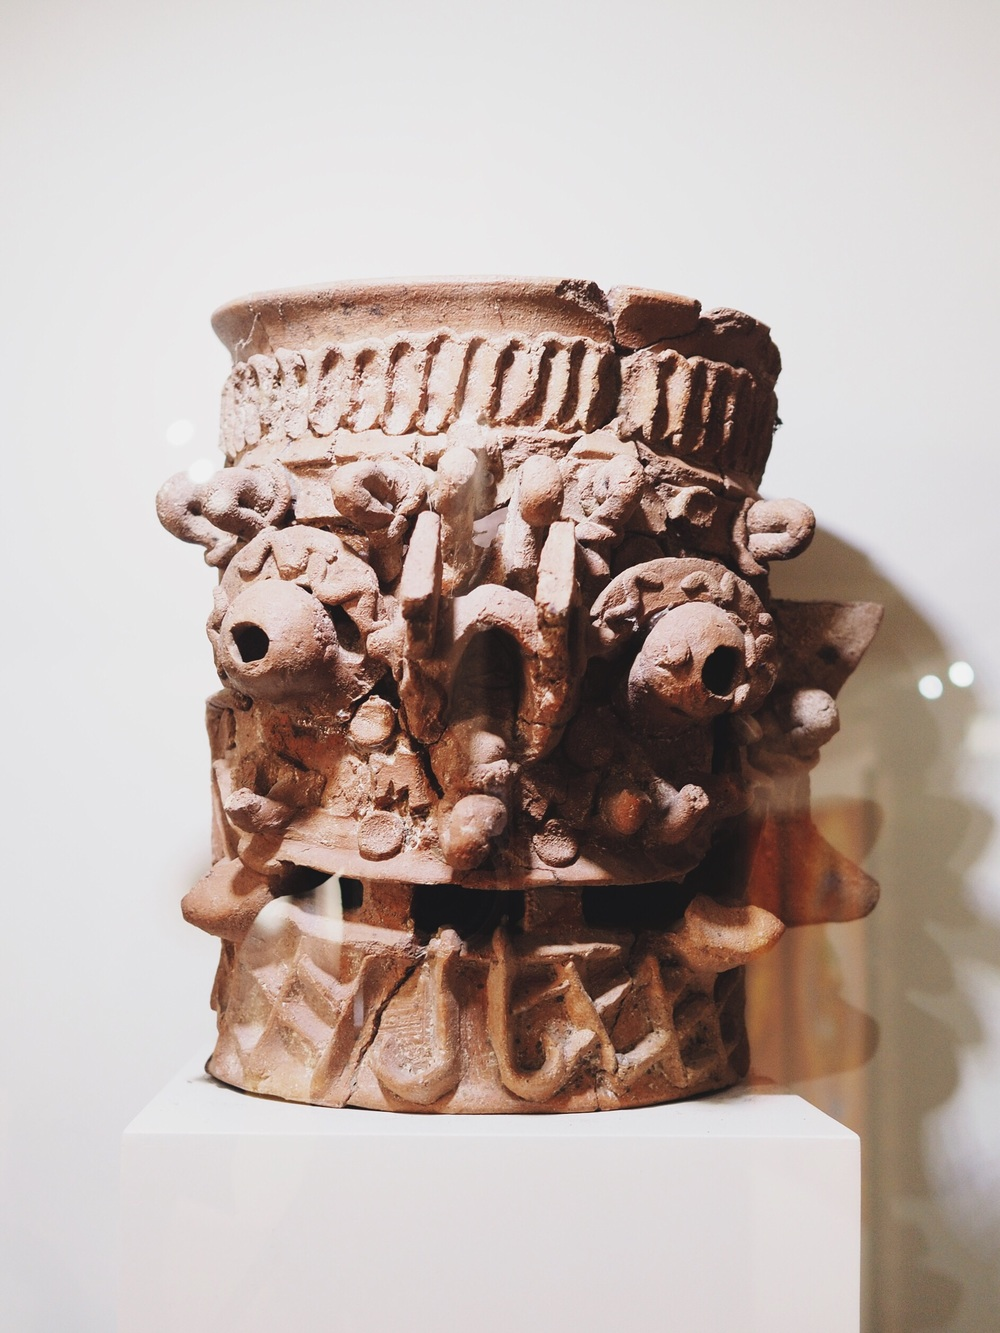 Clay sculpture, circa 800-1000 AD